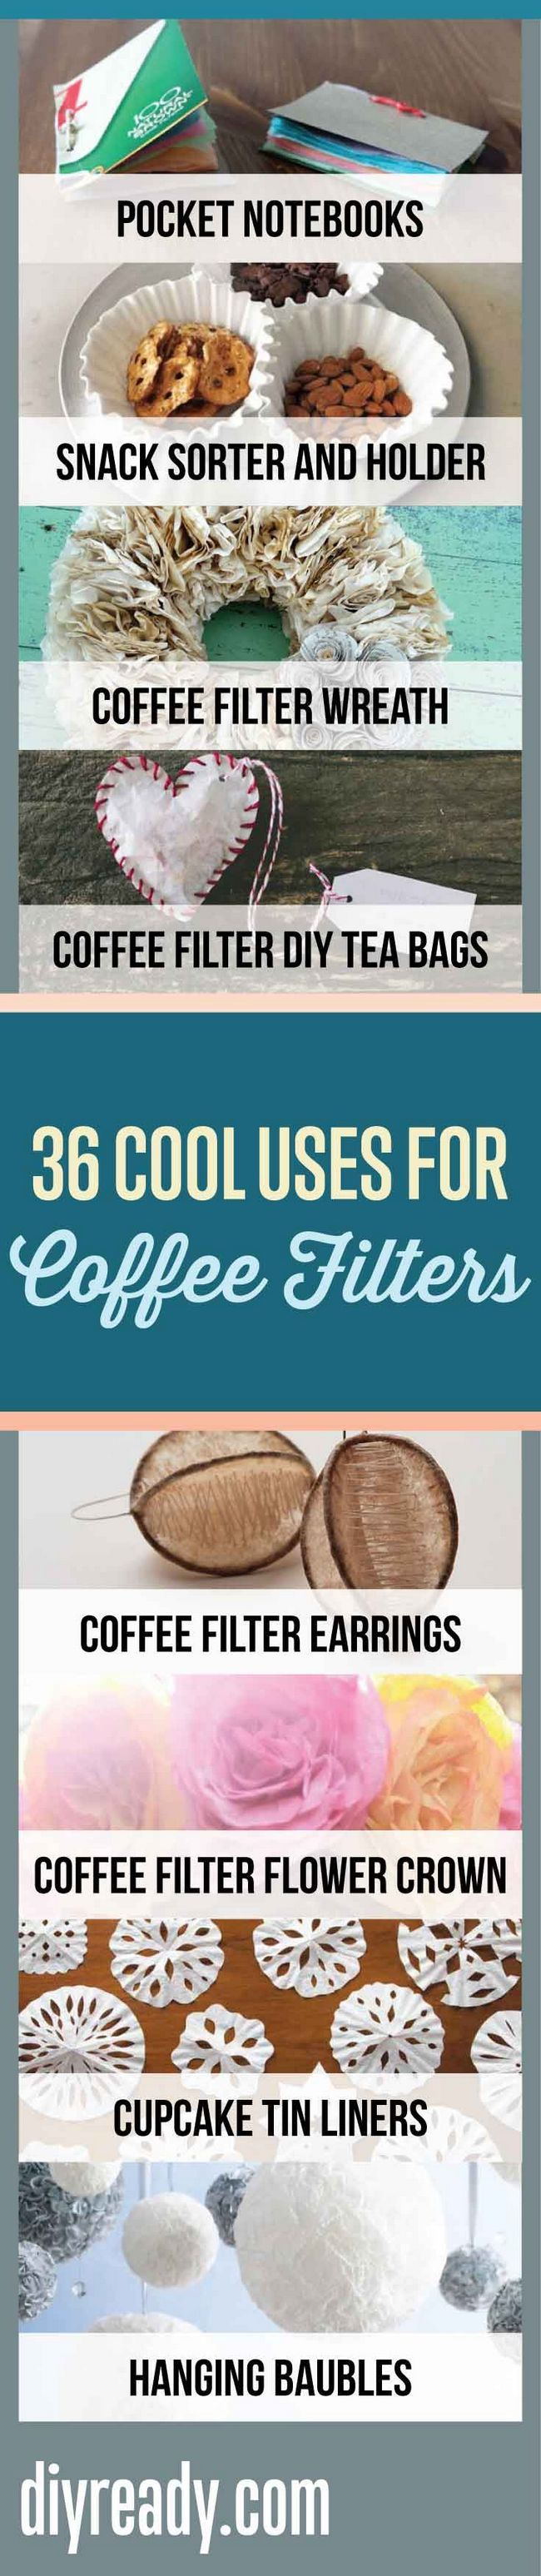 Usos de los Filtros de café | Proyectos y Oficios de bricolaje de bricolaje Listo en http://artesaniasdebricolaje.ru/uses-for-coffee-filters-diy-projects-and-ideas